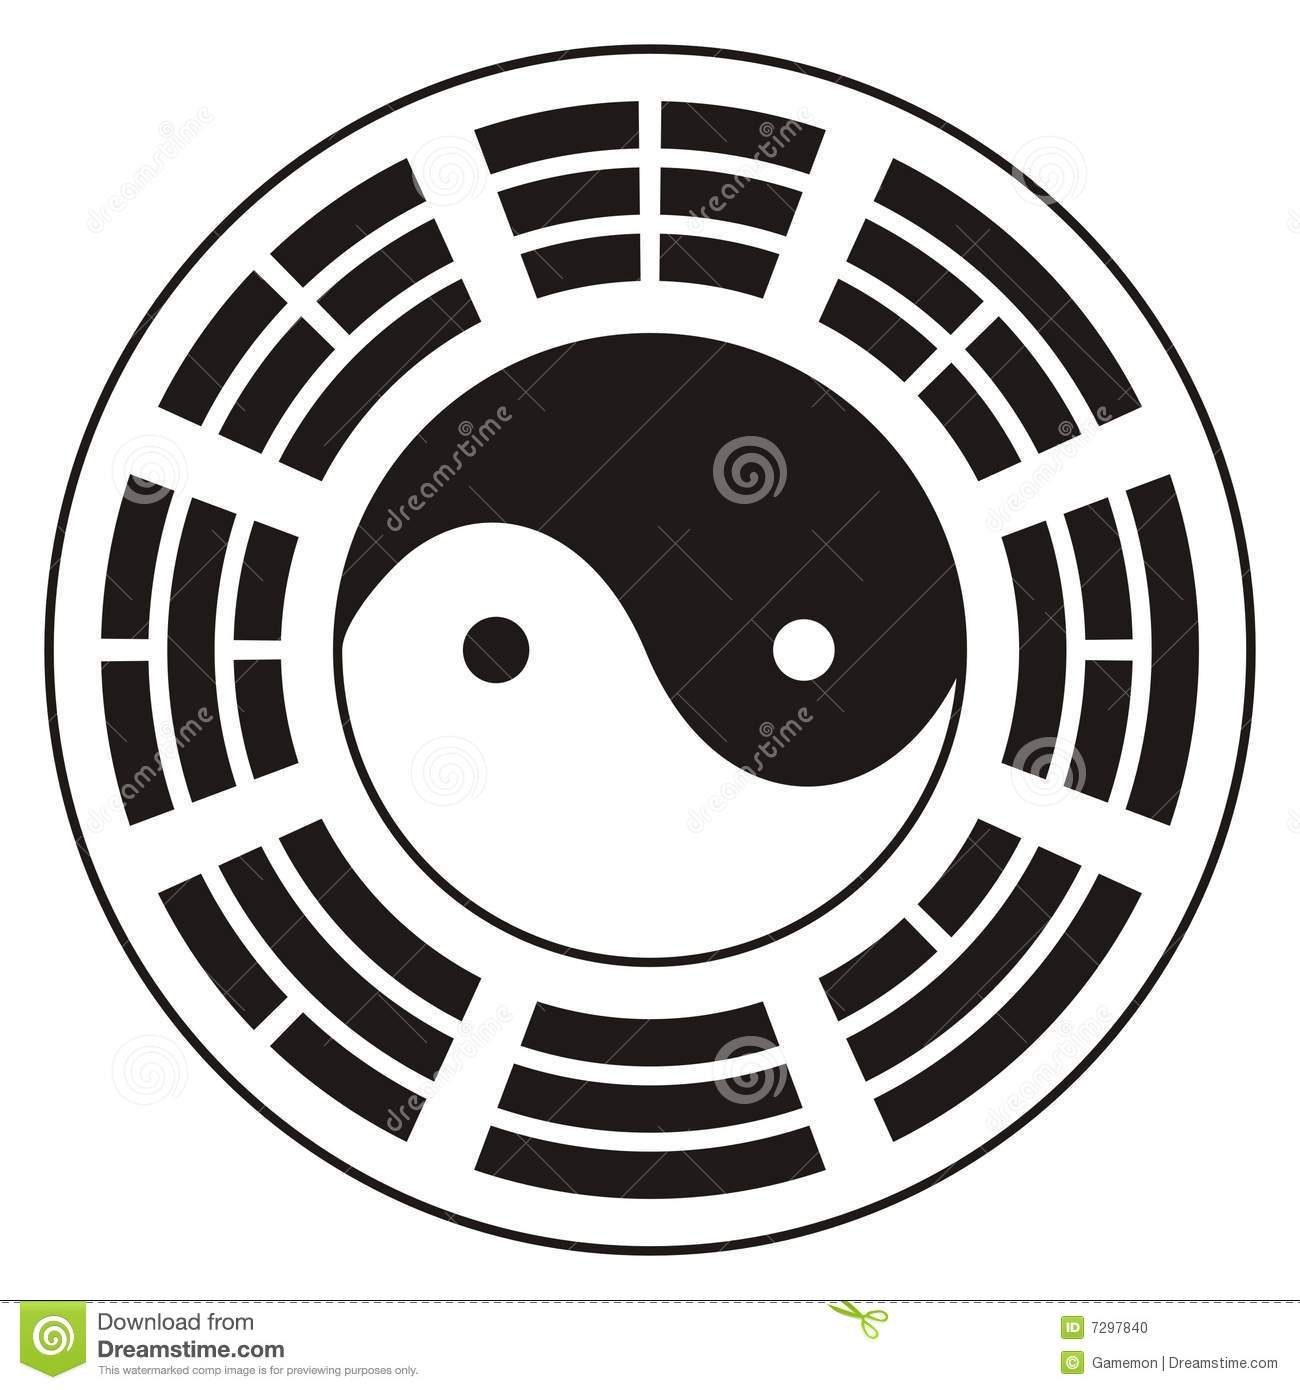 Yin yang design stock photo image 7297840 for Architecture yin yang